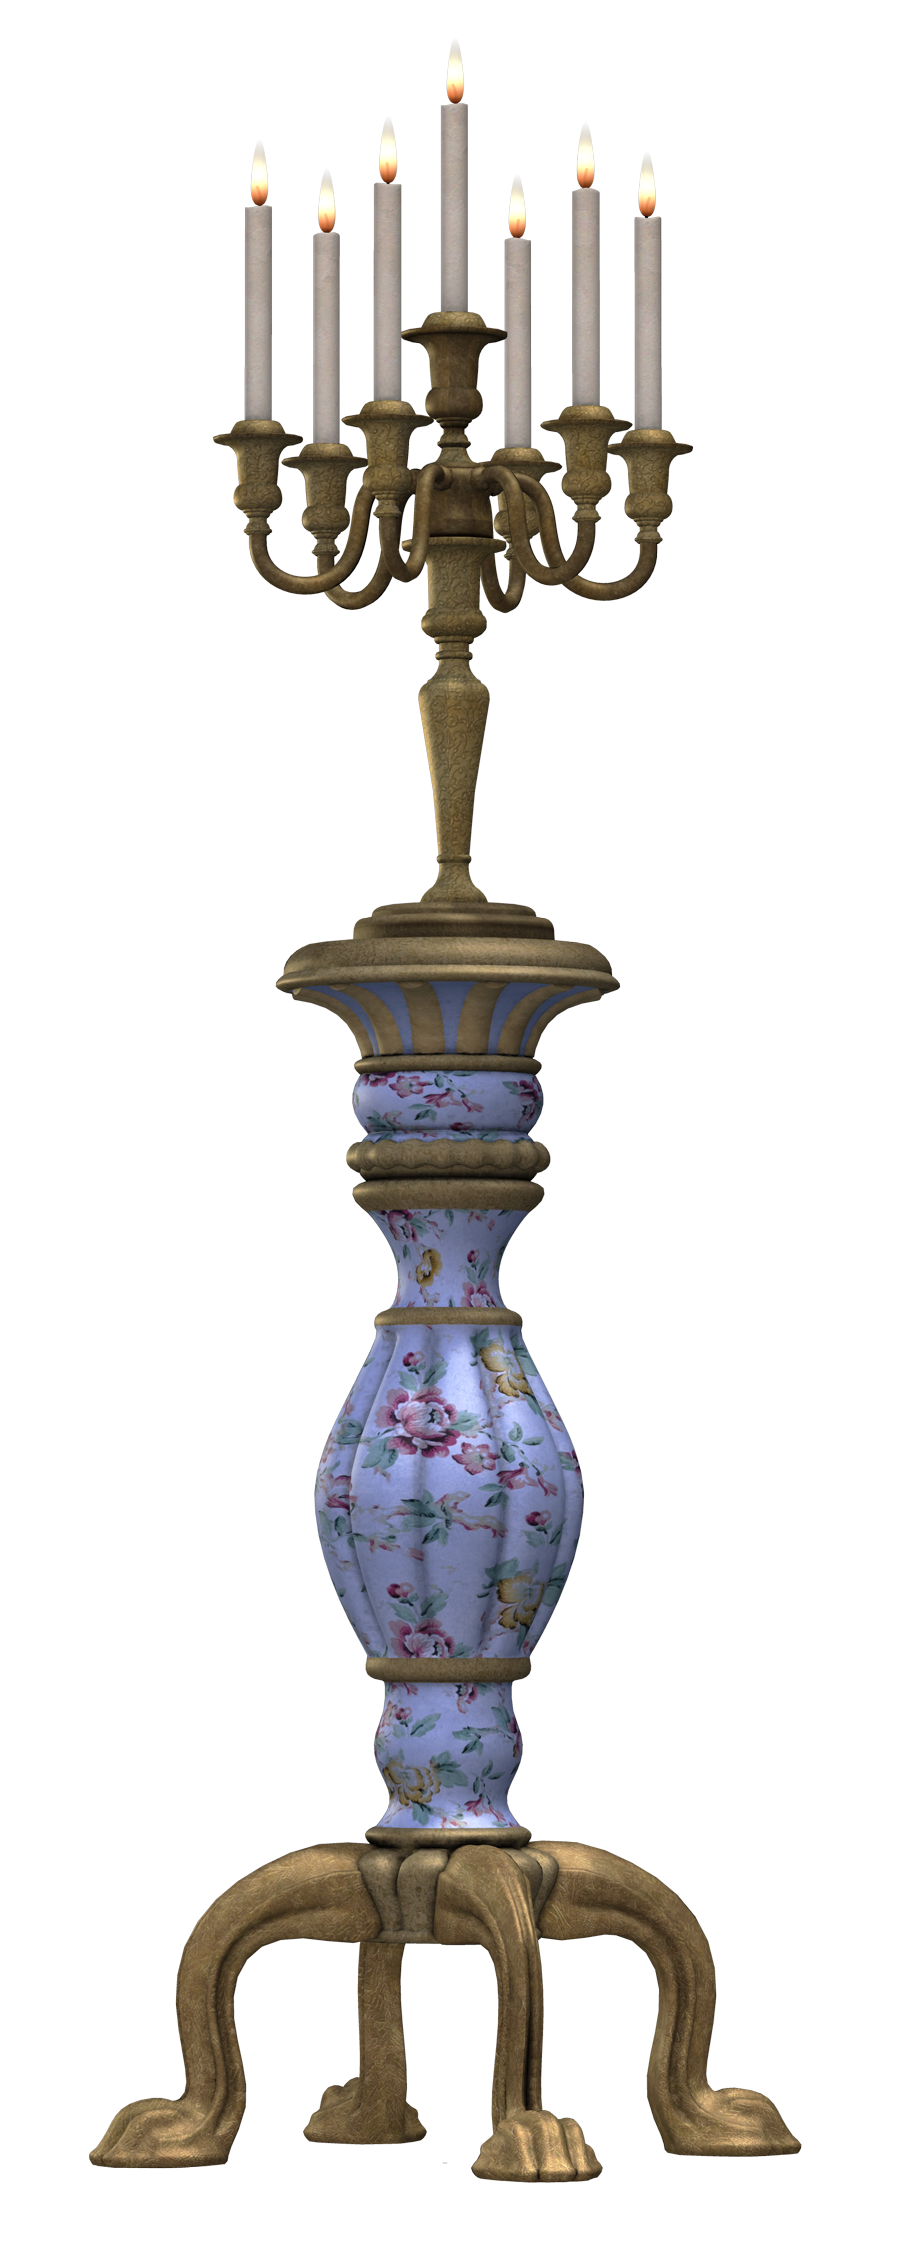 Candle stick png. Candlestick image purepng free